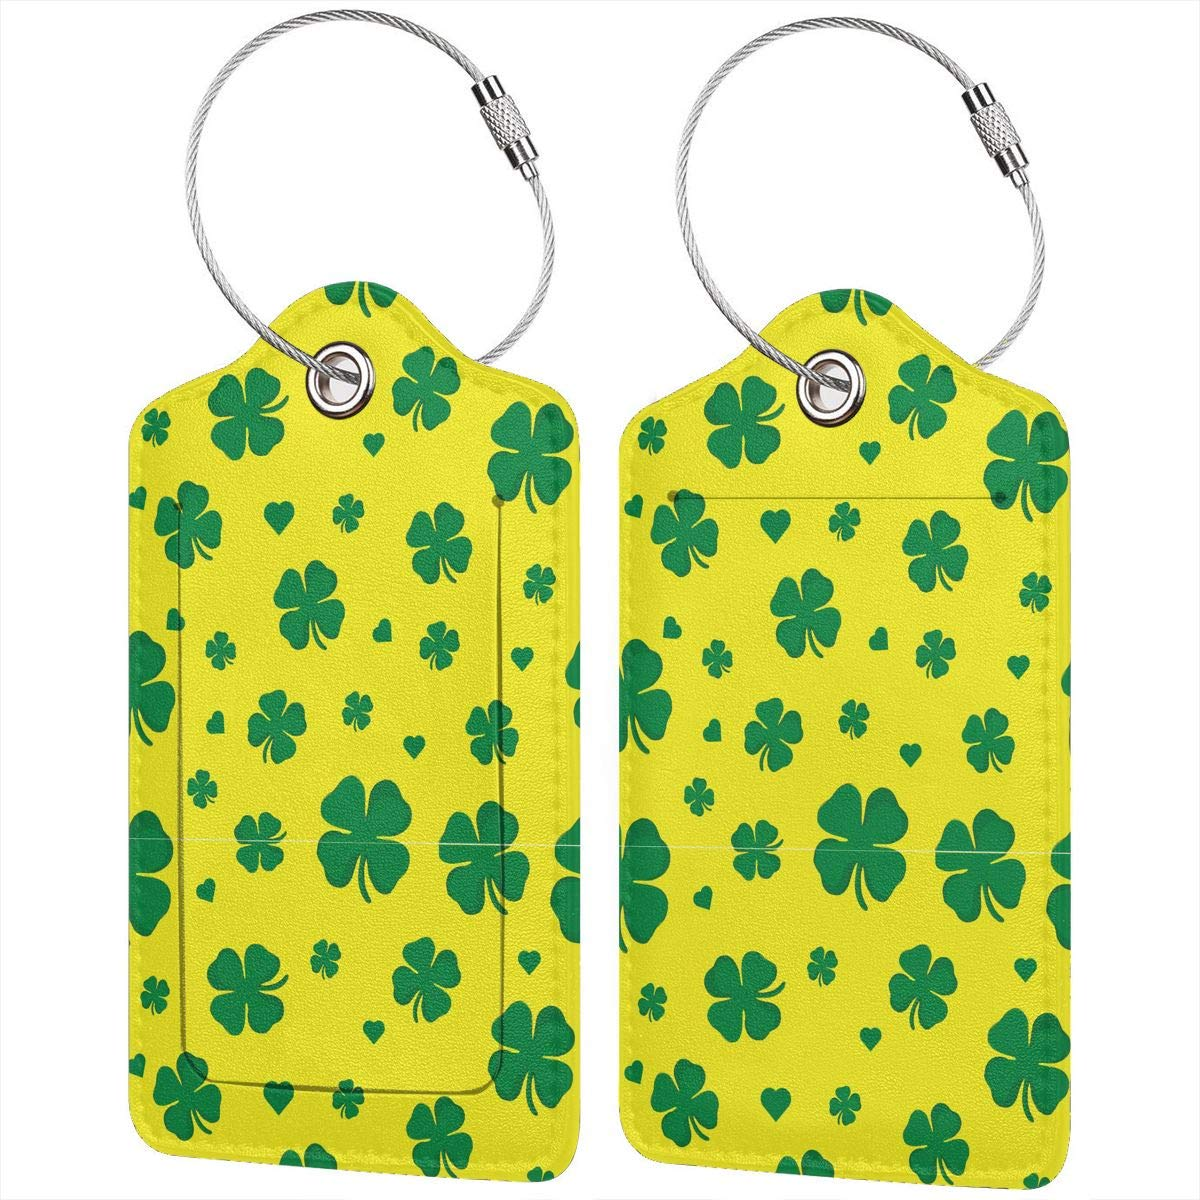 Lucaeat Clover Background Luggage Tag PU Leather Bag Tag Travel Suitcases ID